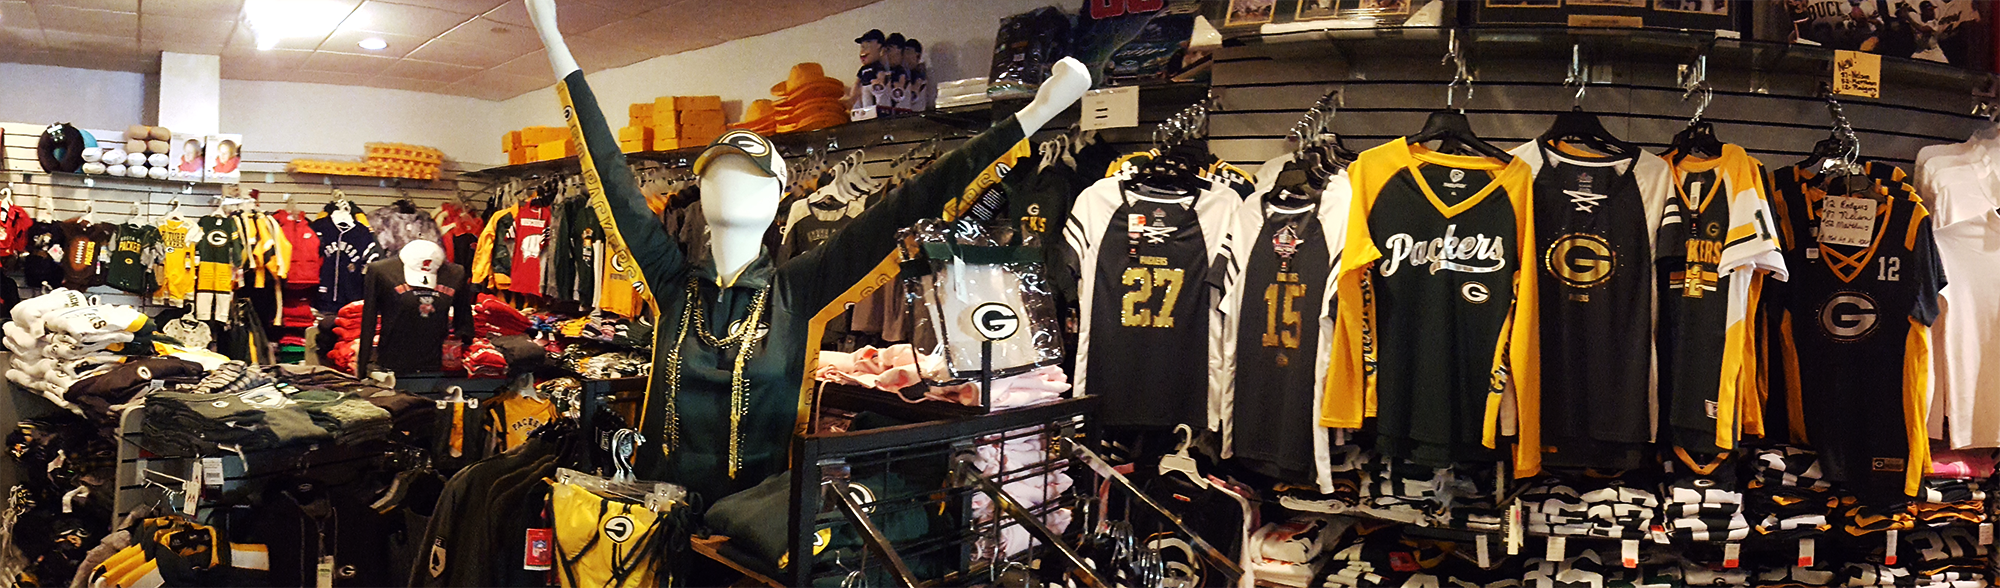 Packer Gear and Cheese Store